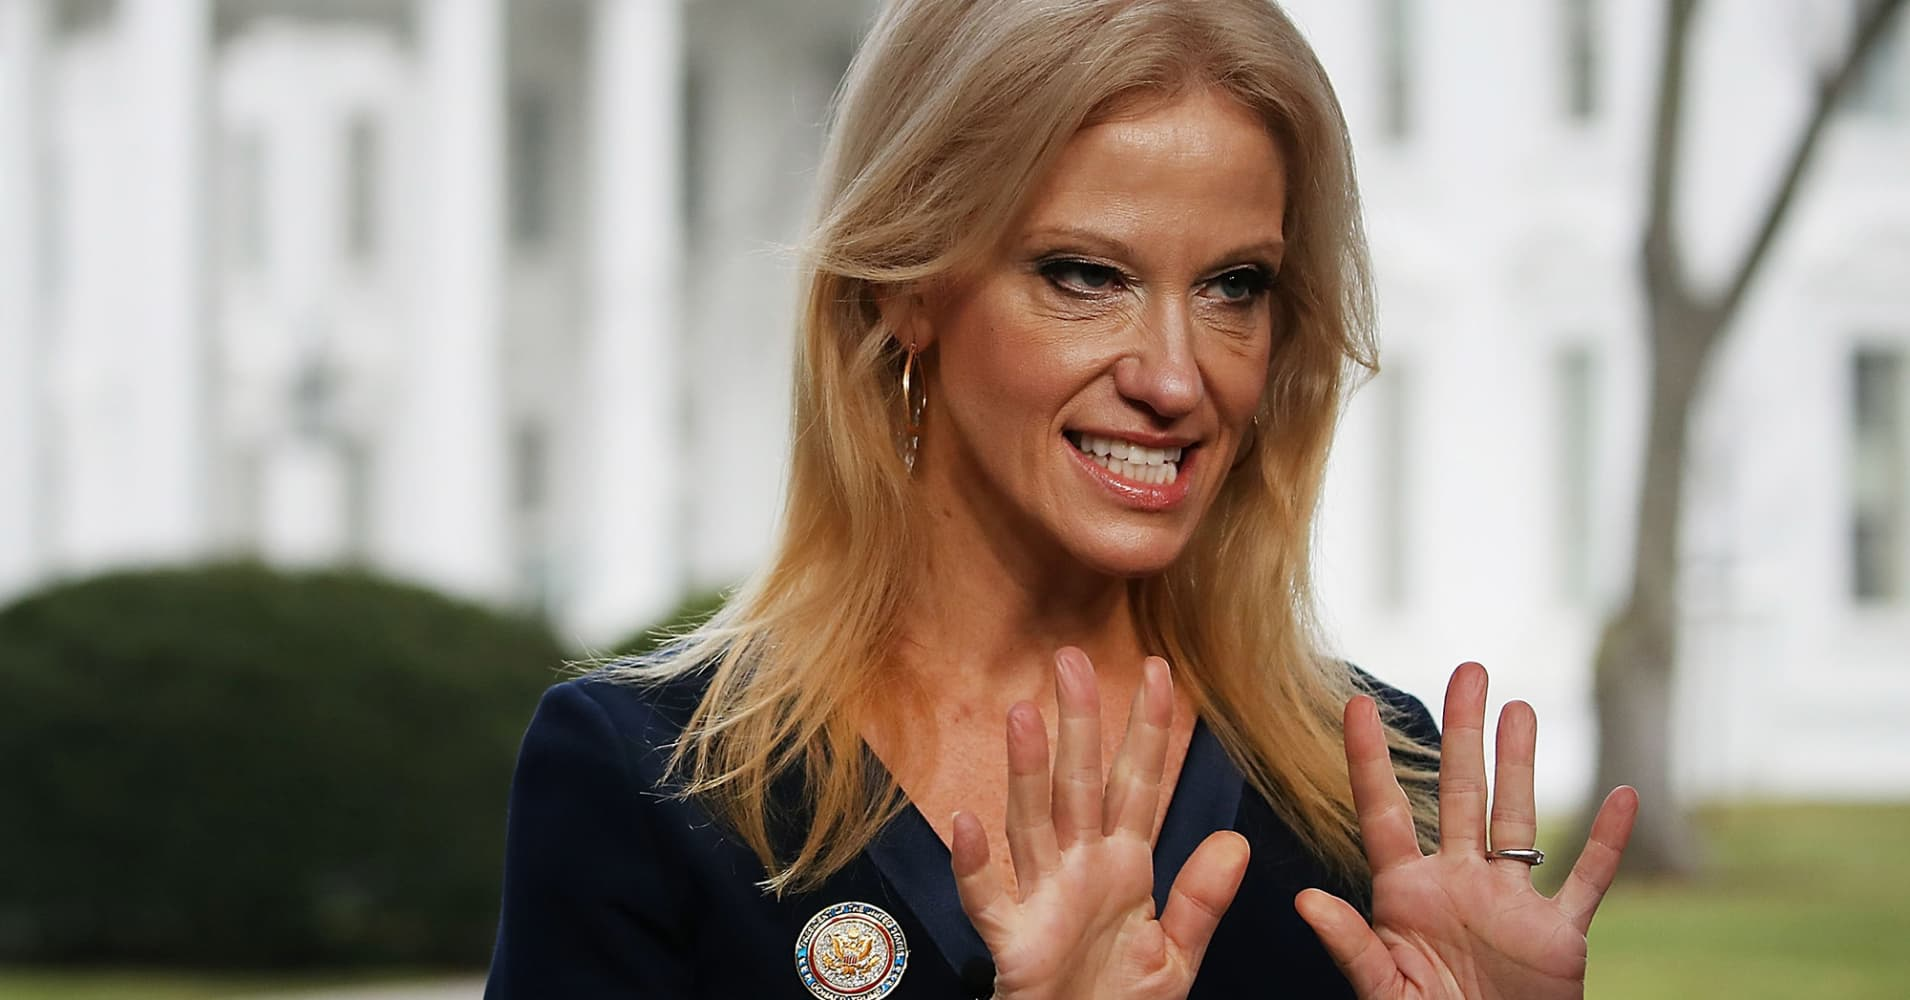 trump travel ban kellyanne conway made up a fake terrorist attack counselor to president kellyanne conway prepares to appear on the sunday morning show meet